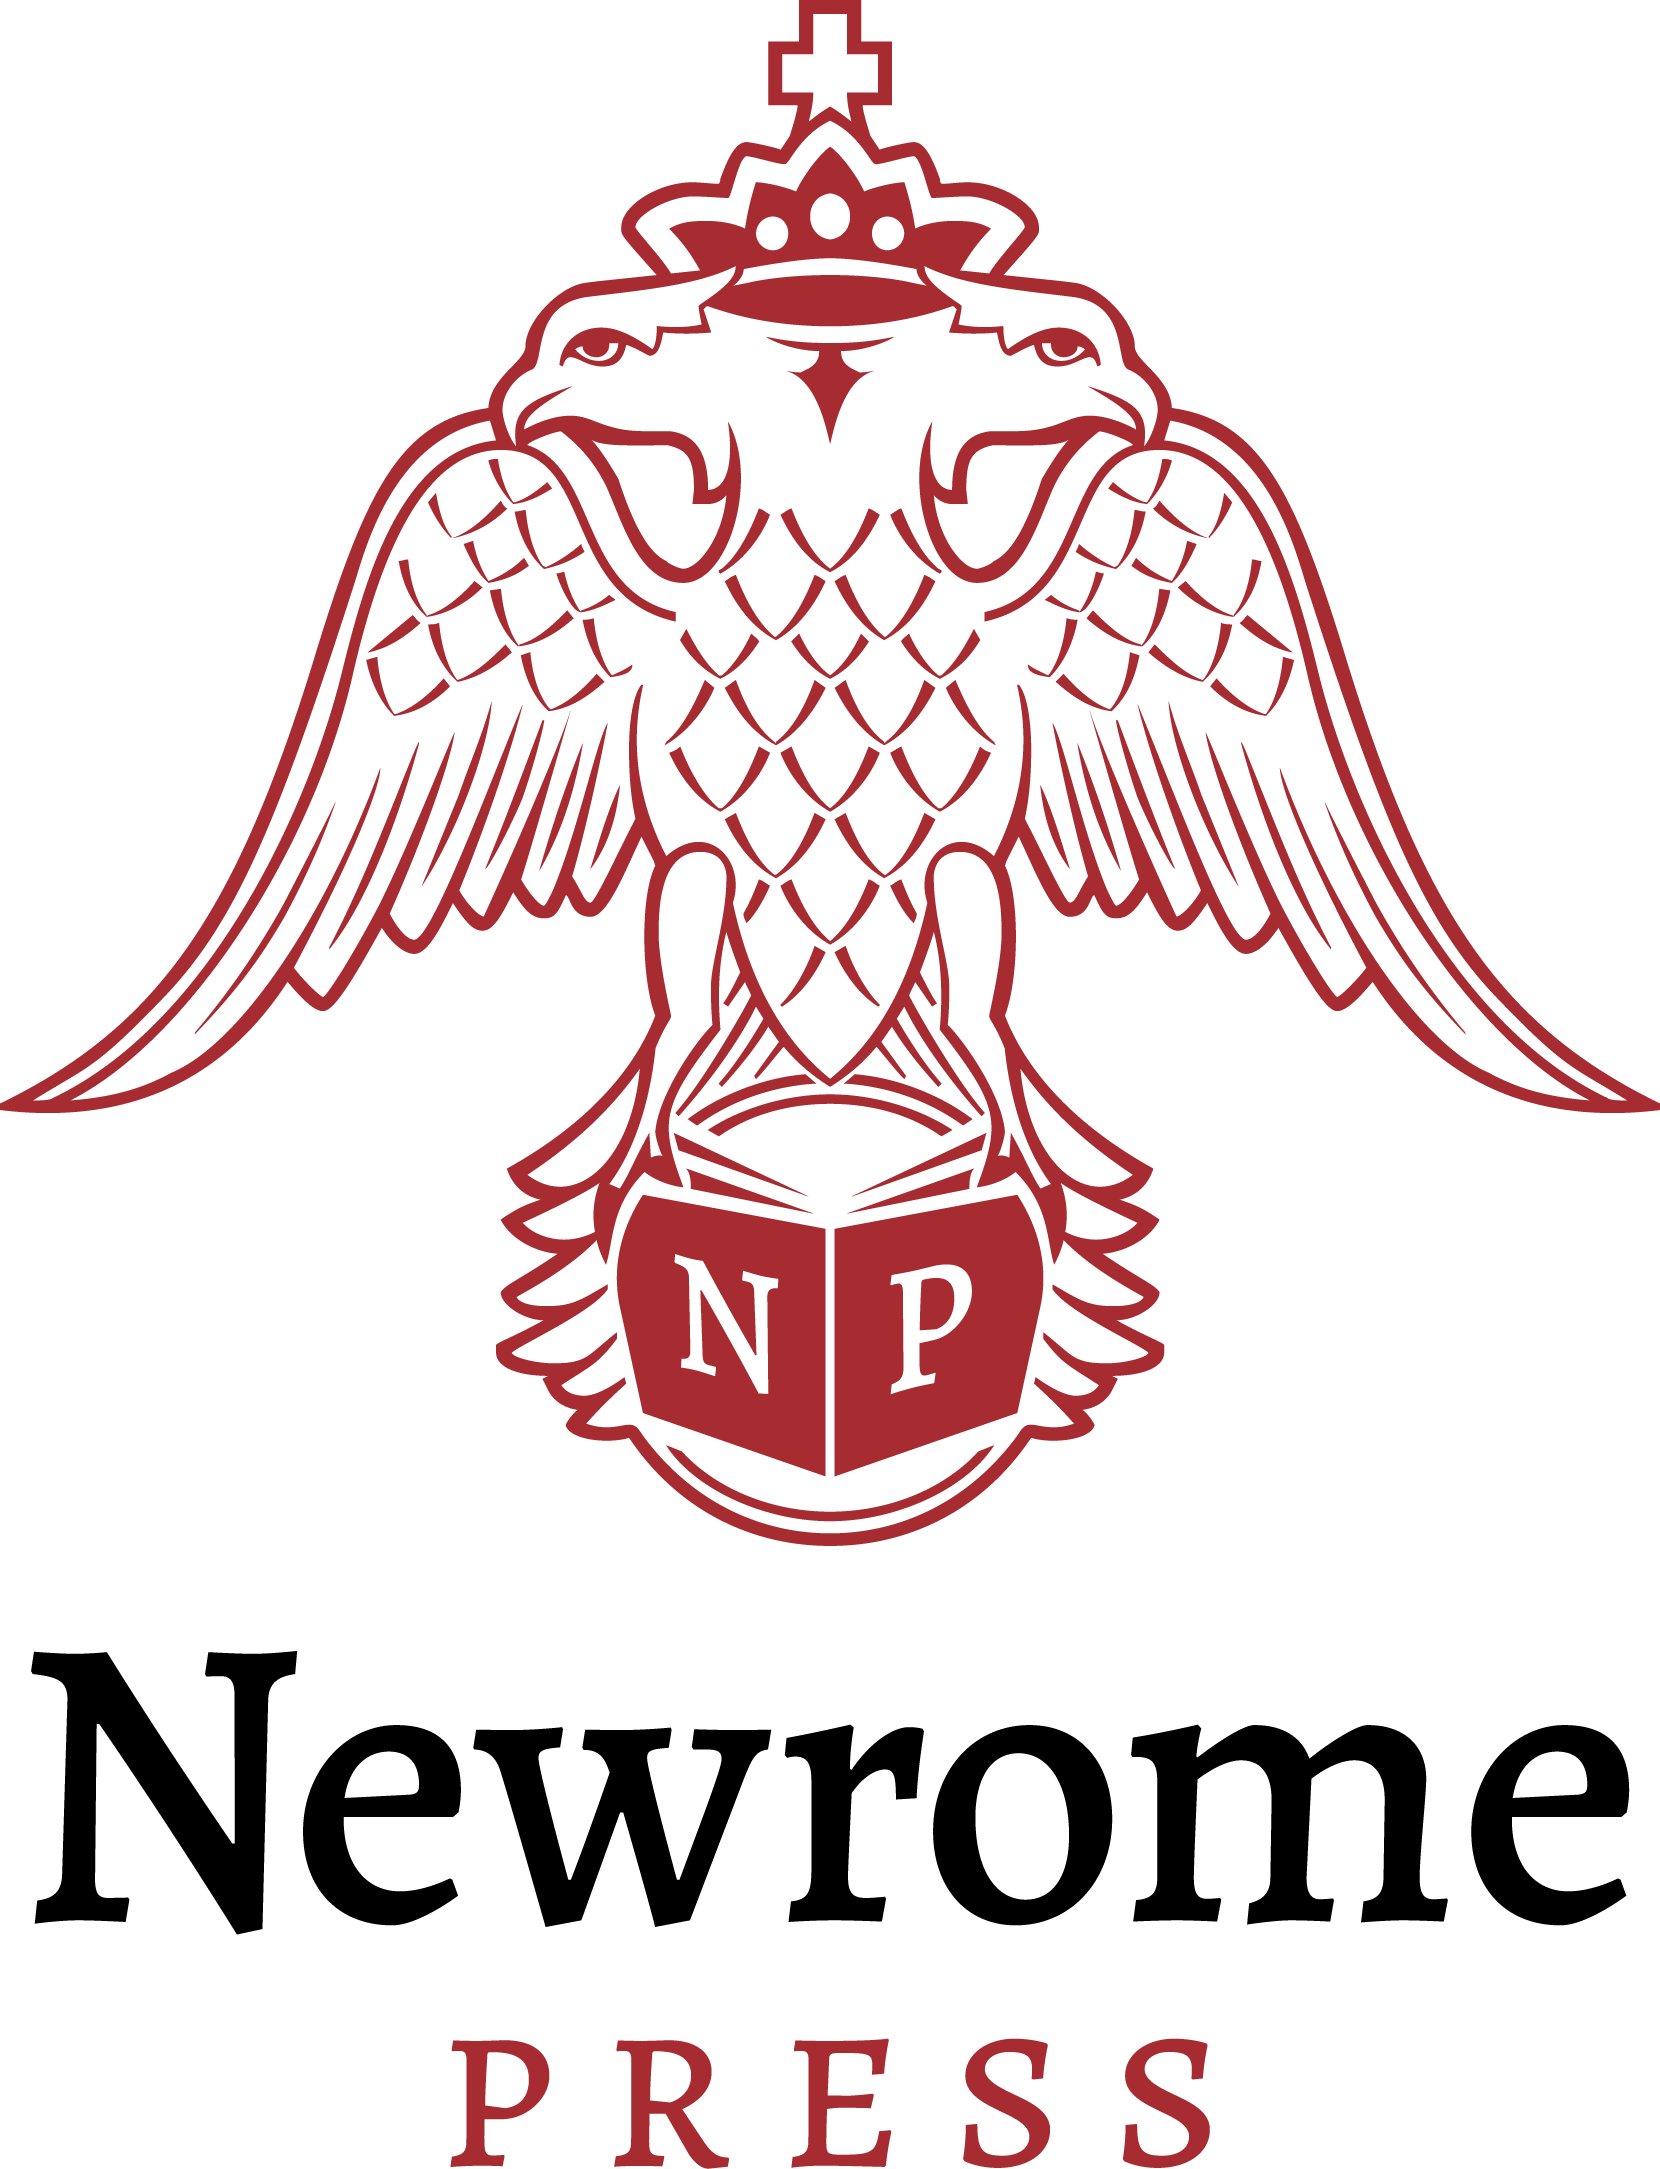 Newrome Press